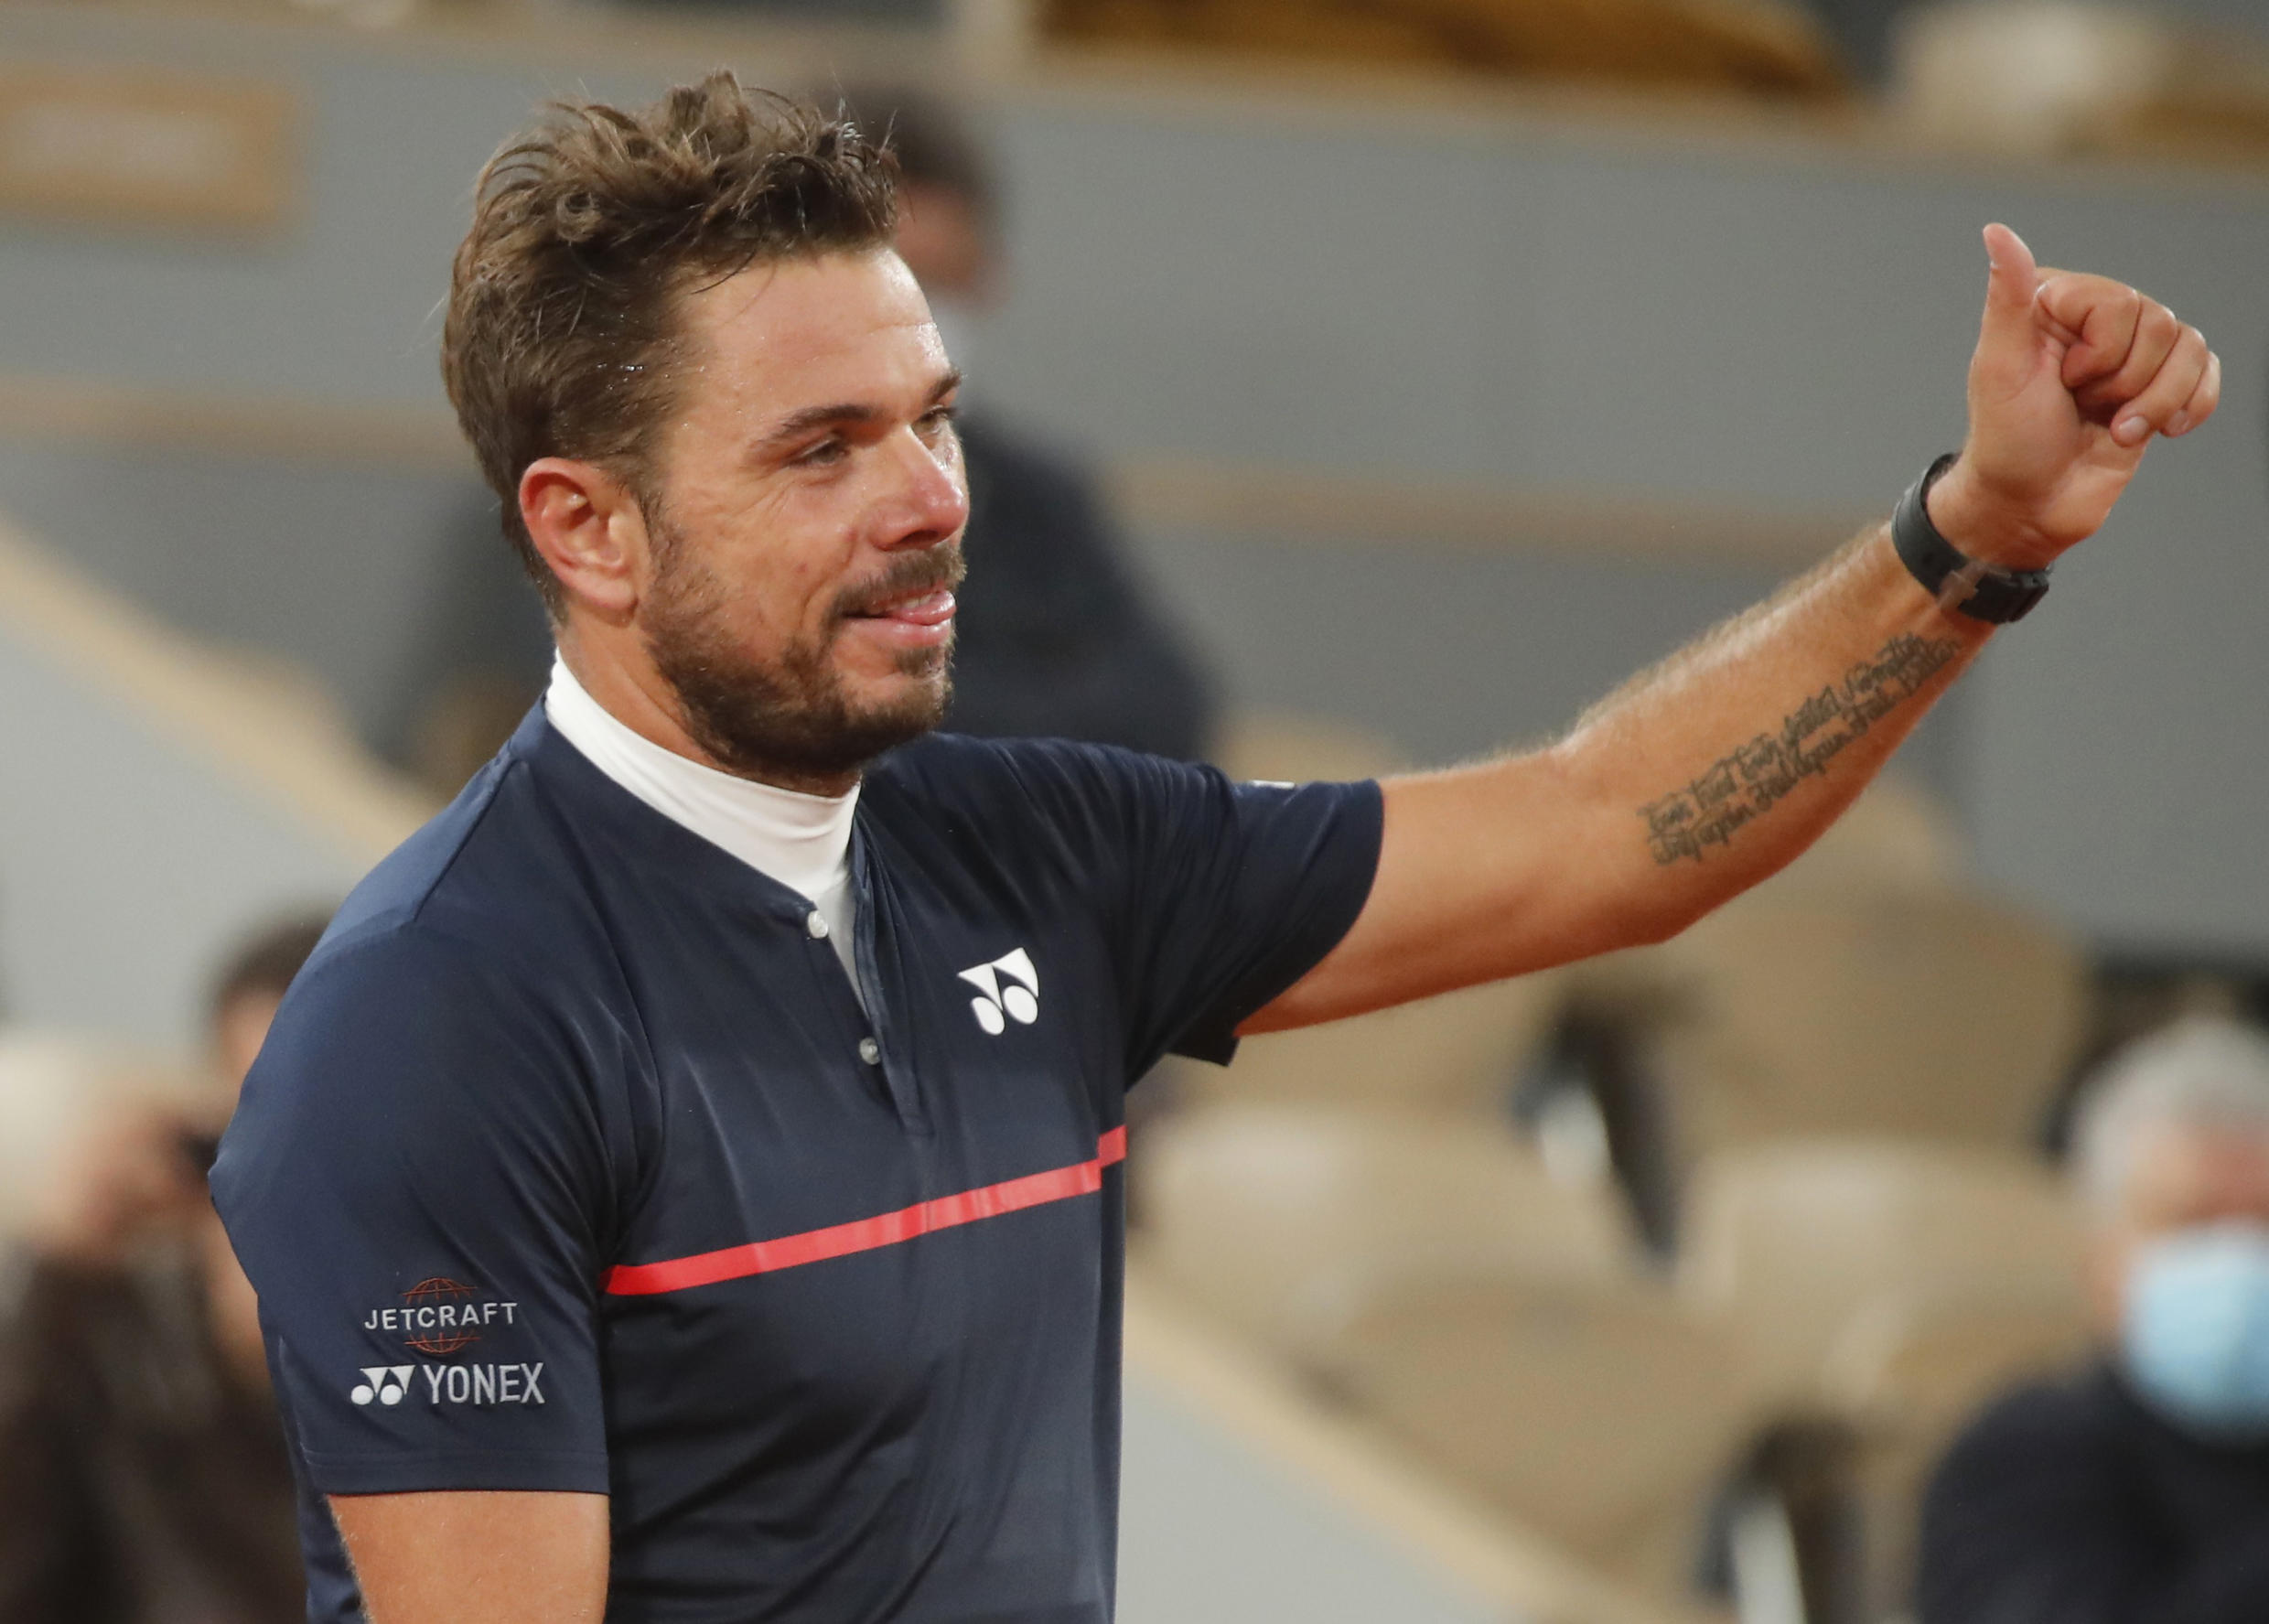 Stan Wawrinka beat Andy Murray in straight sets to advance to the second round at the 2020 French Open.